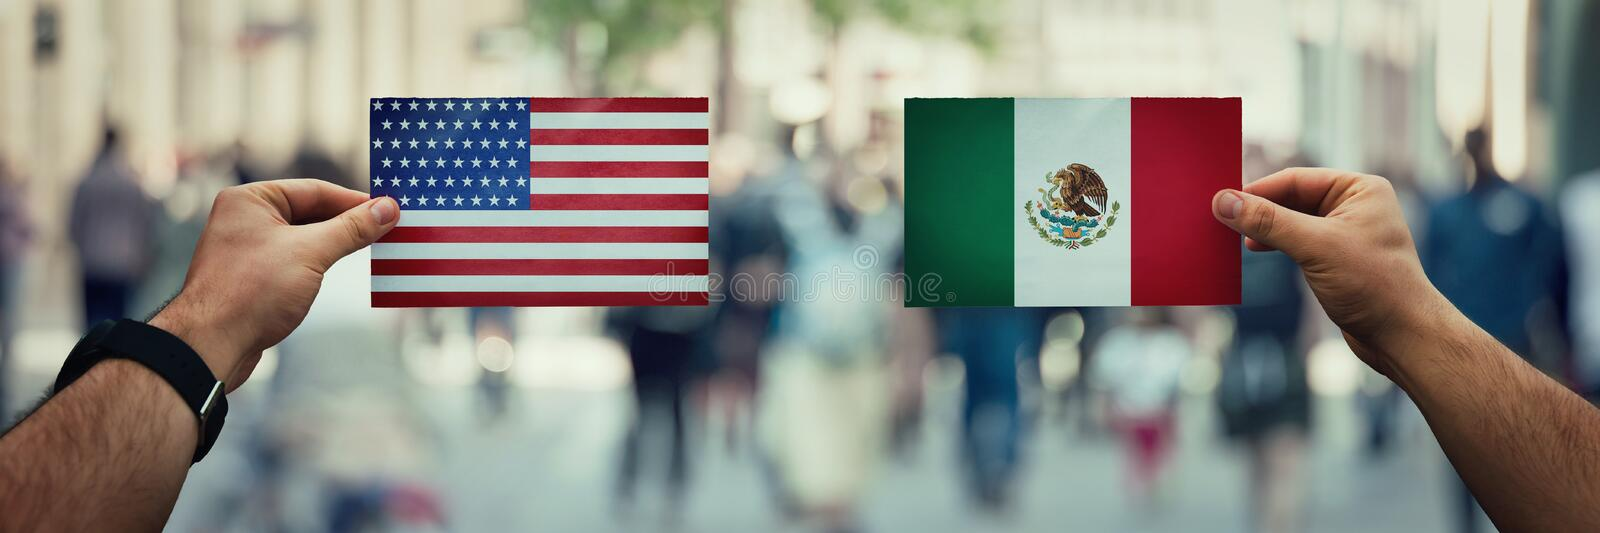 Usa vs mexico. Two hands holding different flags, Mexico vs United States on politics arena over crowded street background. Future strategy, relations between royalty free stock photos